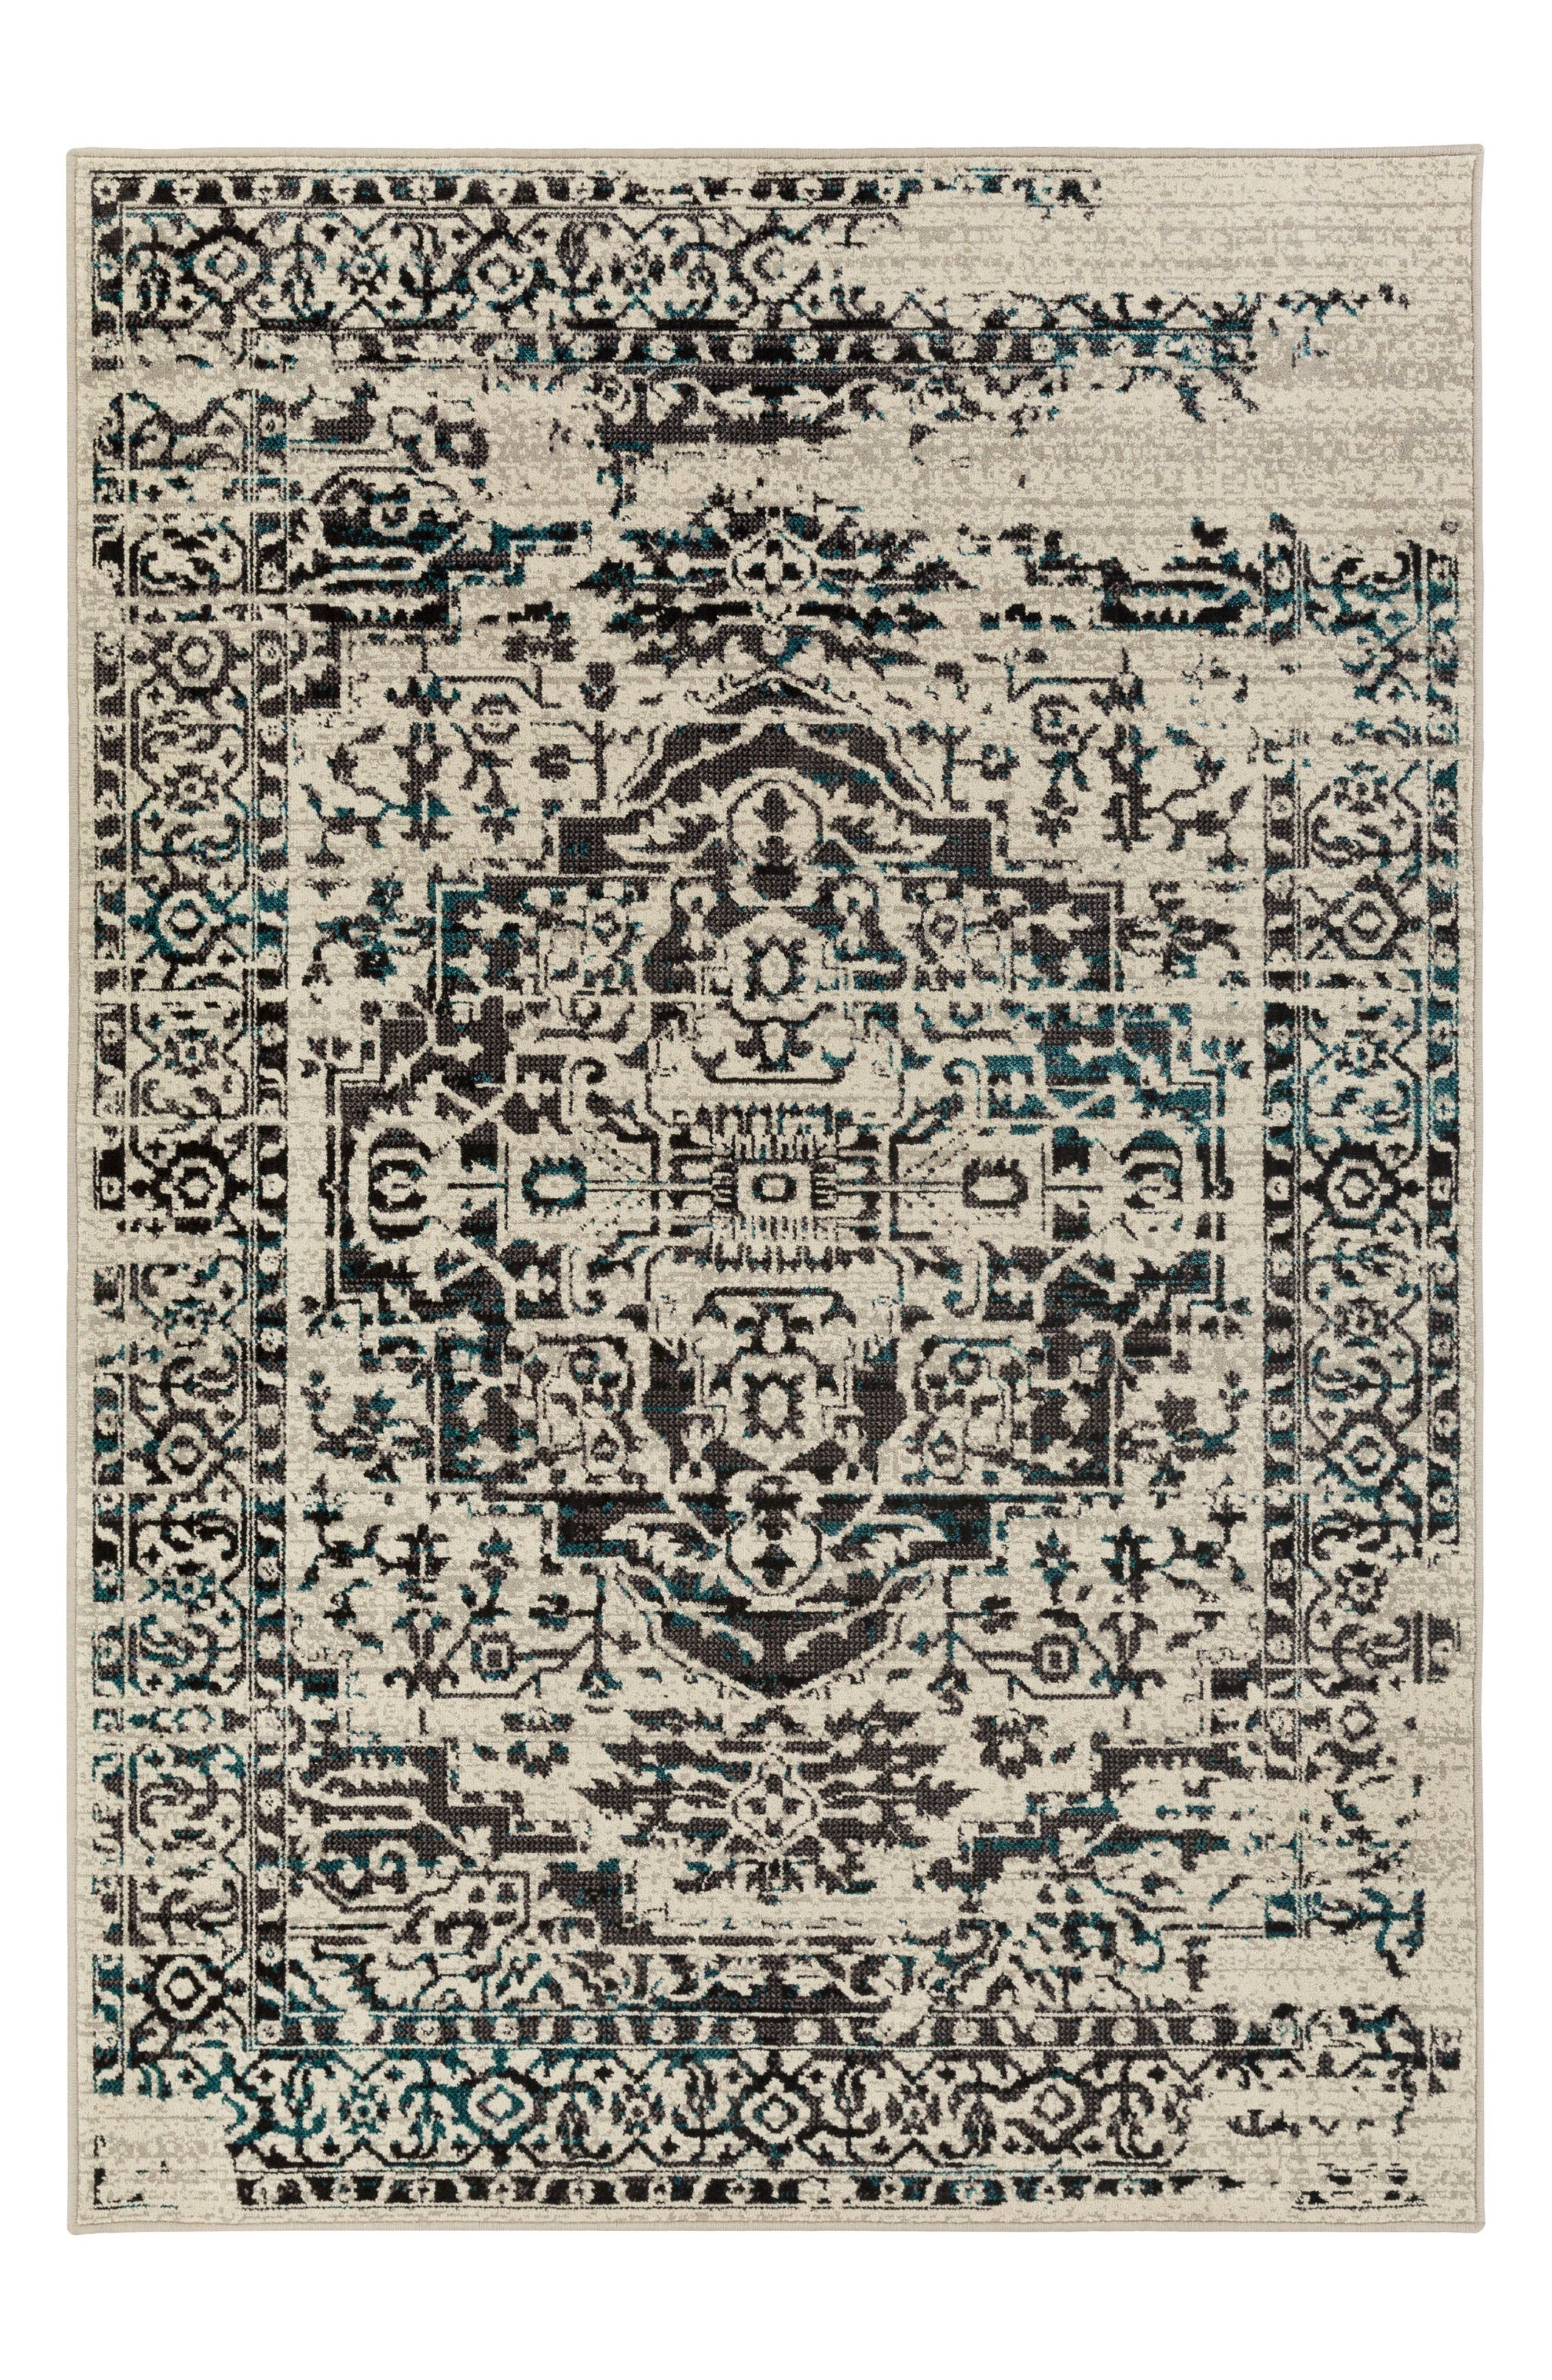 Alternate Image 1 Selected - Surya Home Stretto Classic Motif Rug